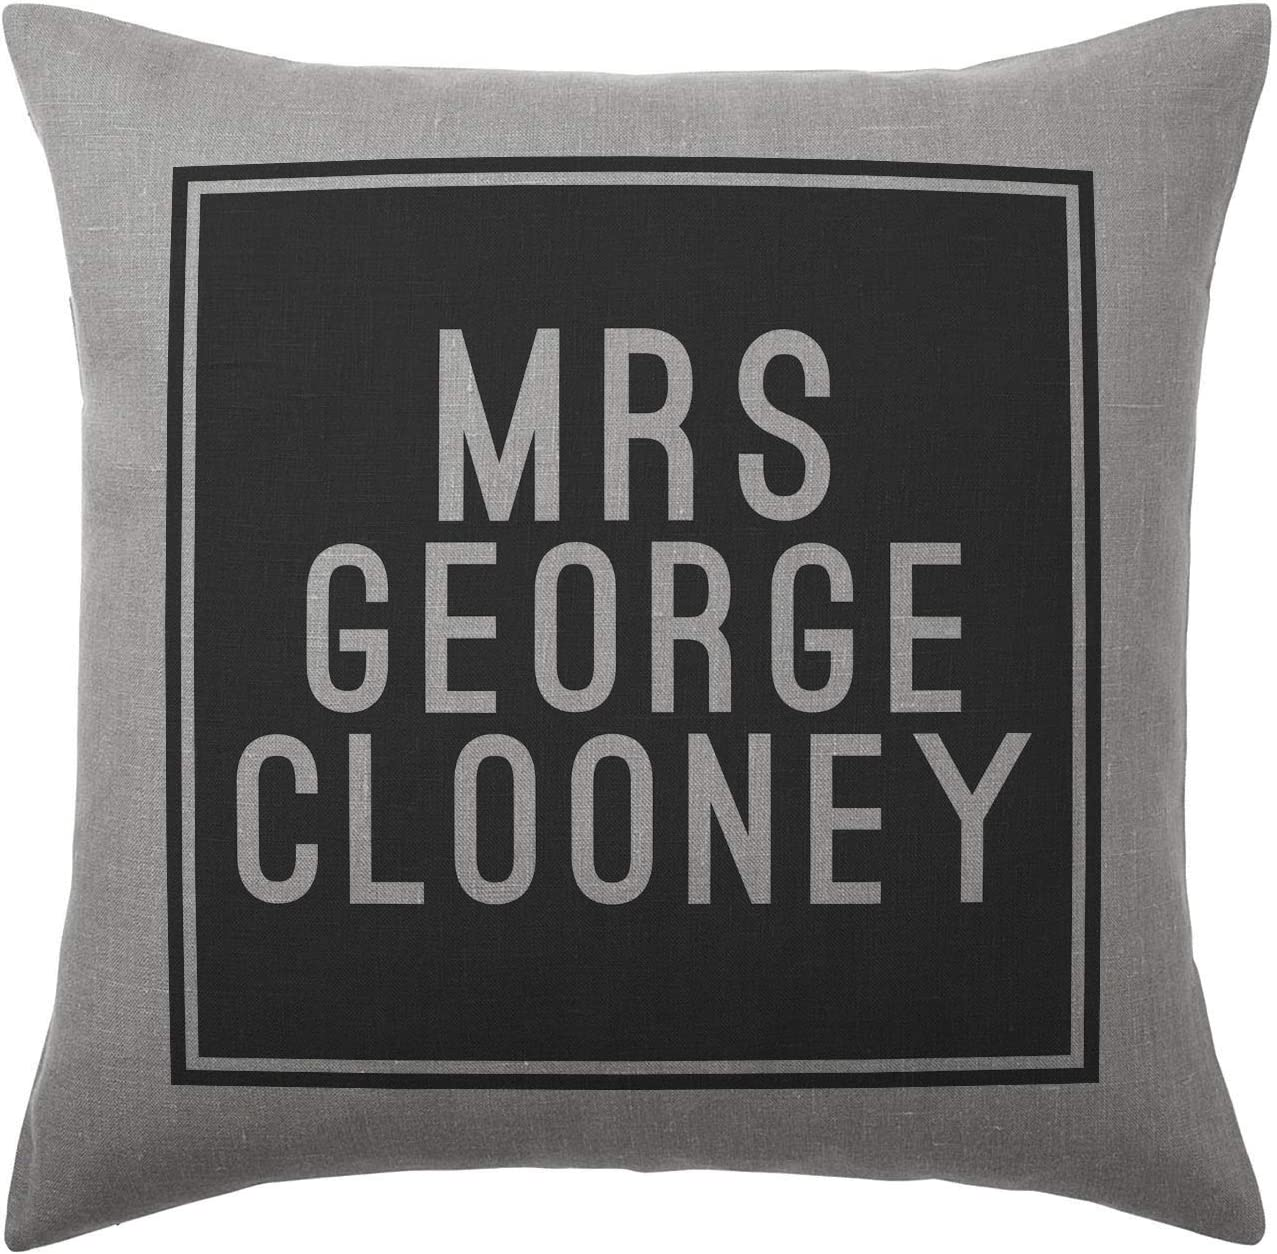 Silver Grey Available with or without filling pad Cover and filling pad 100/% Cotton 40x40cm George Clooney Cushion Pillow